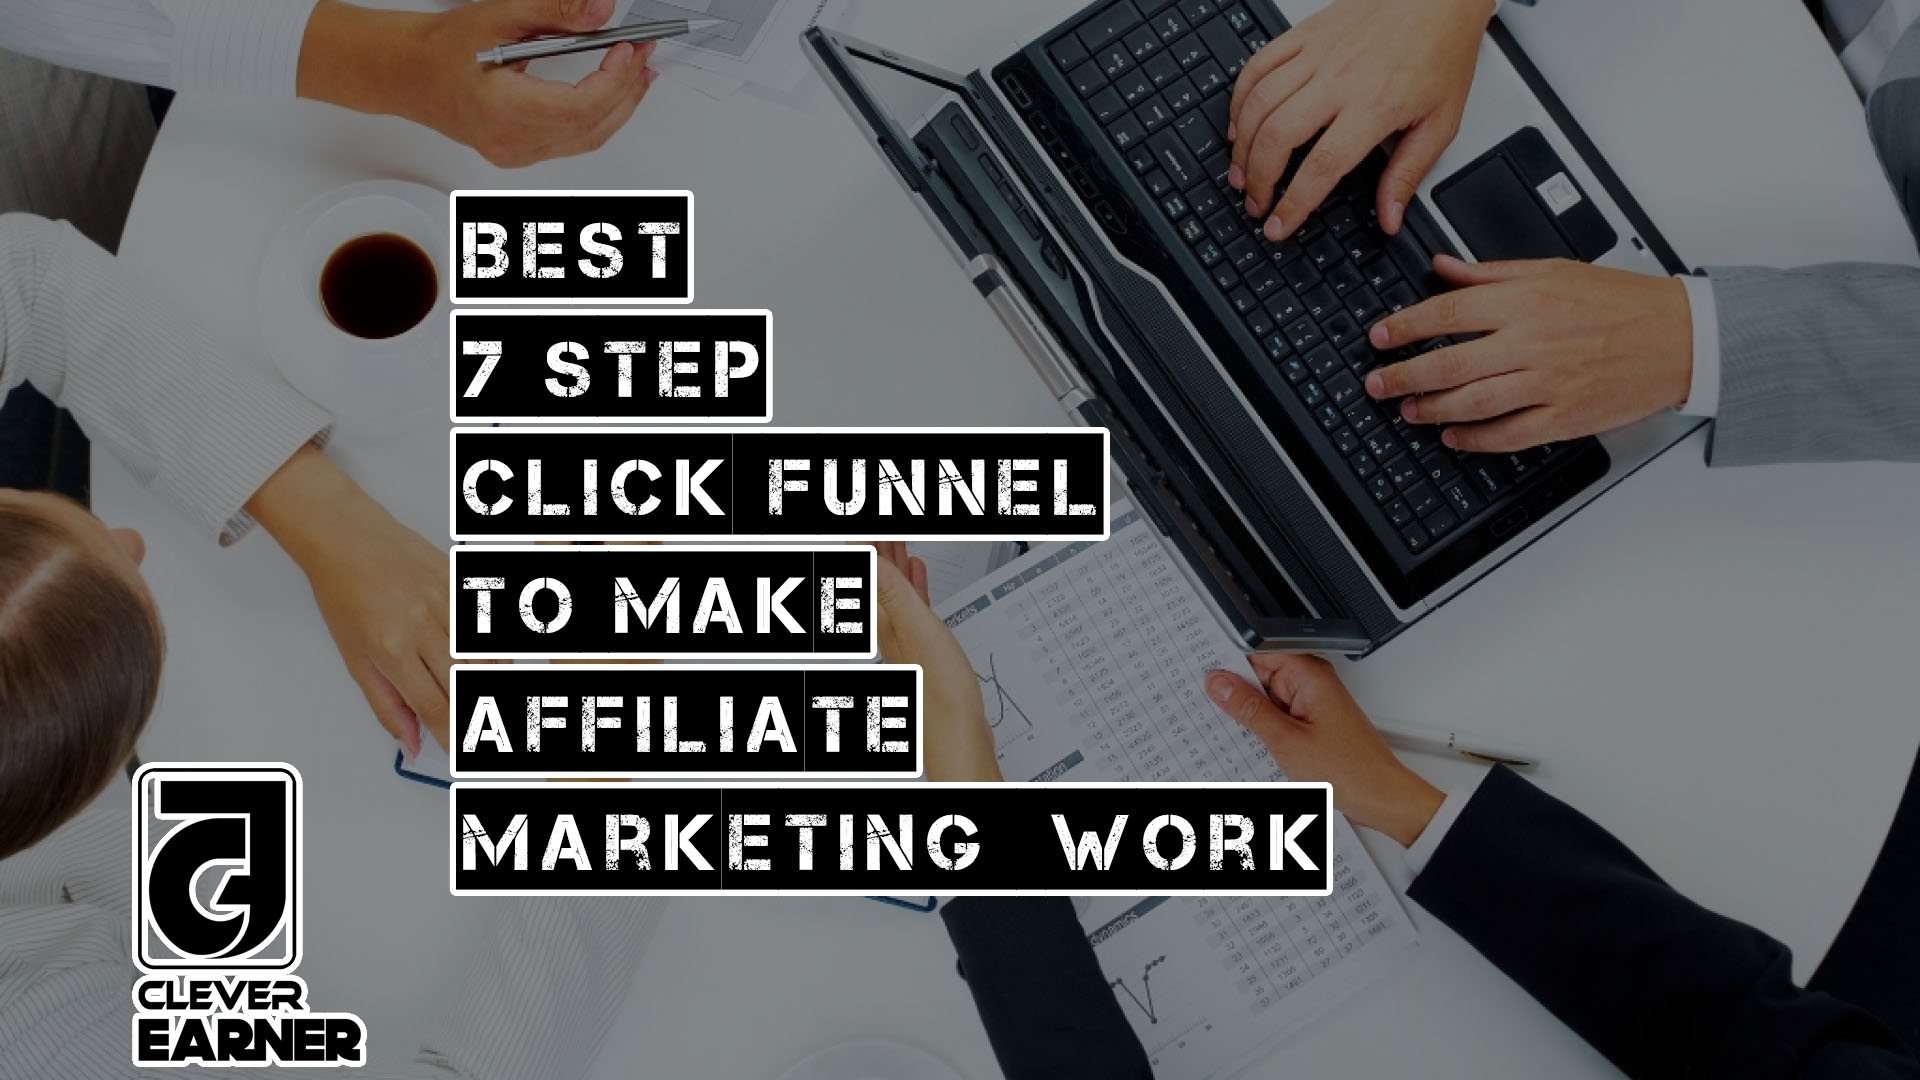 7 step click funnels